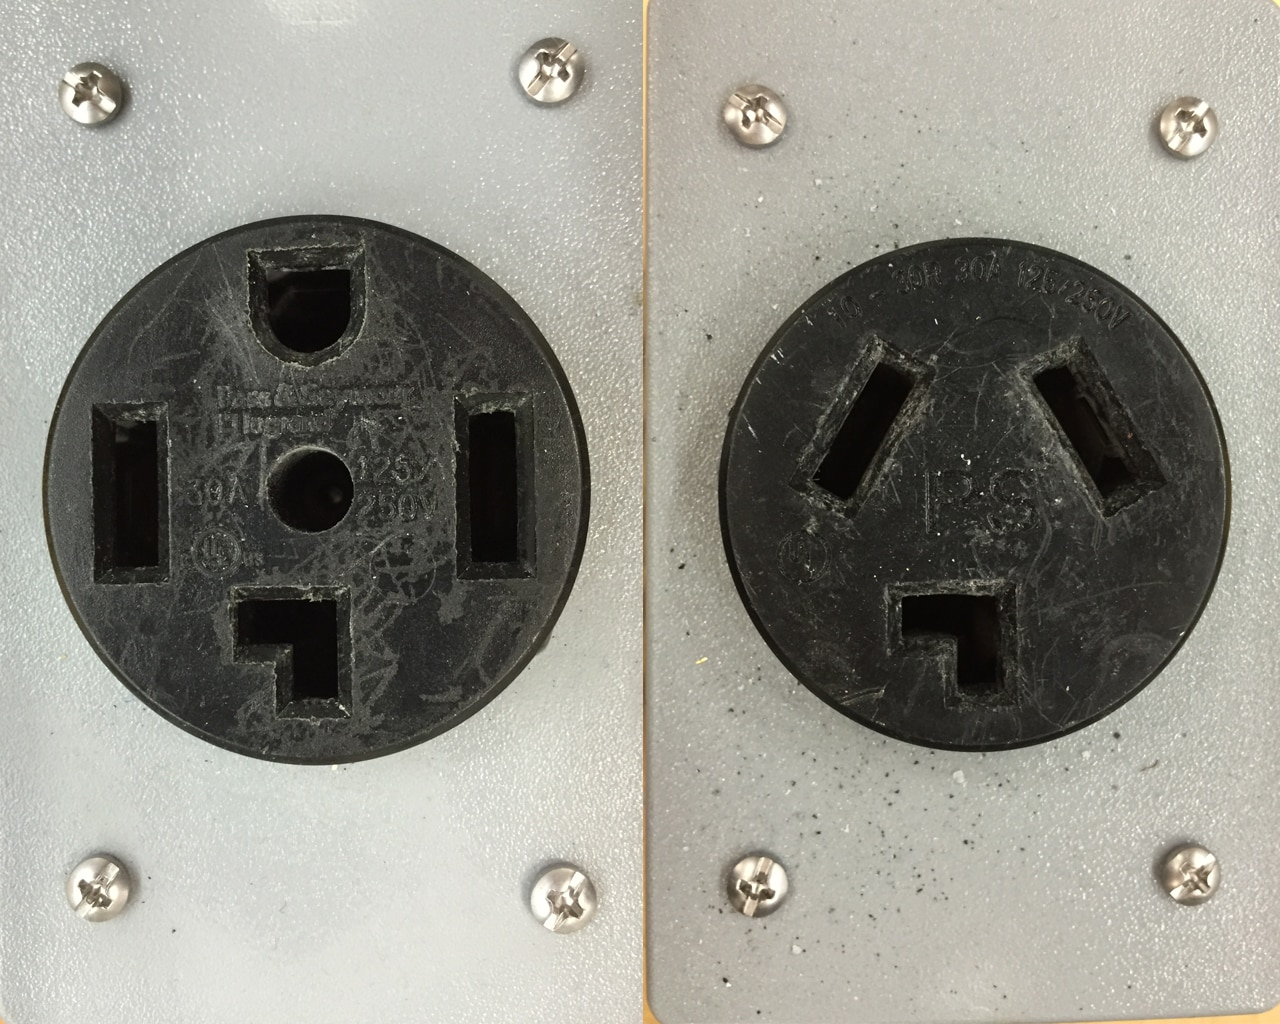 hight resolution of 3 prong vs 4 prong dryer outlets what s the difference fred s appliance